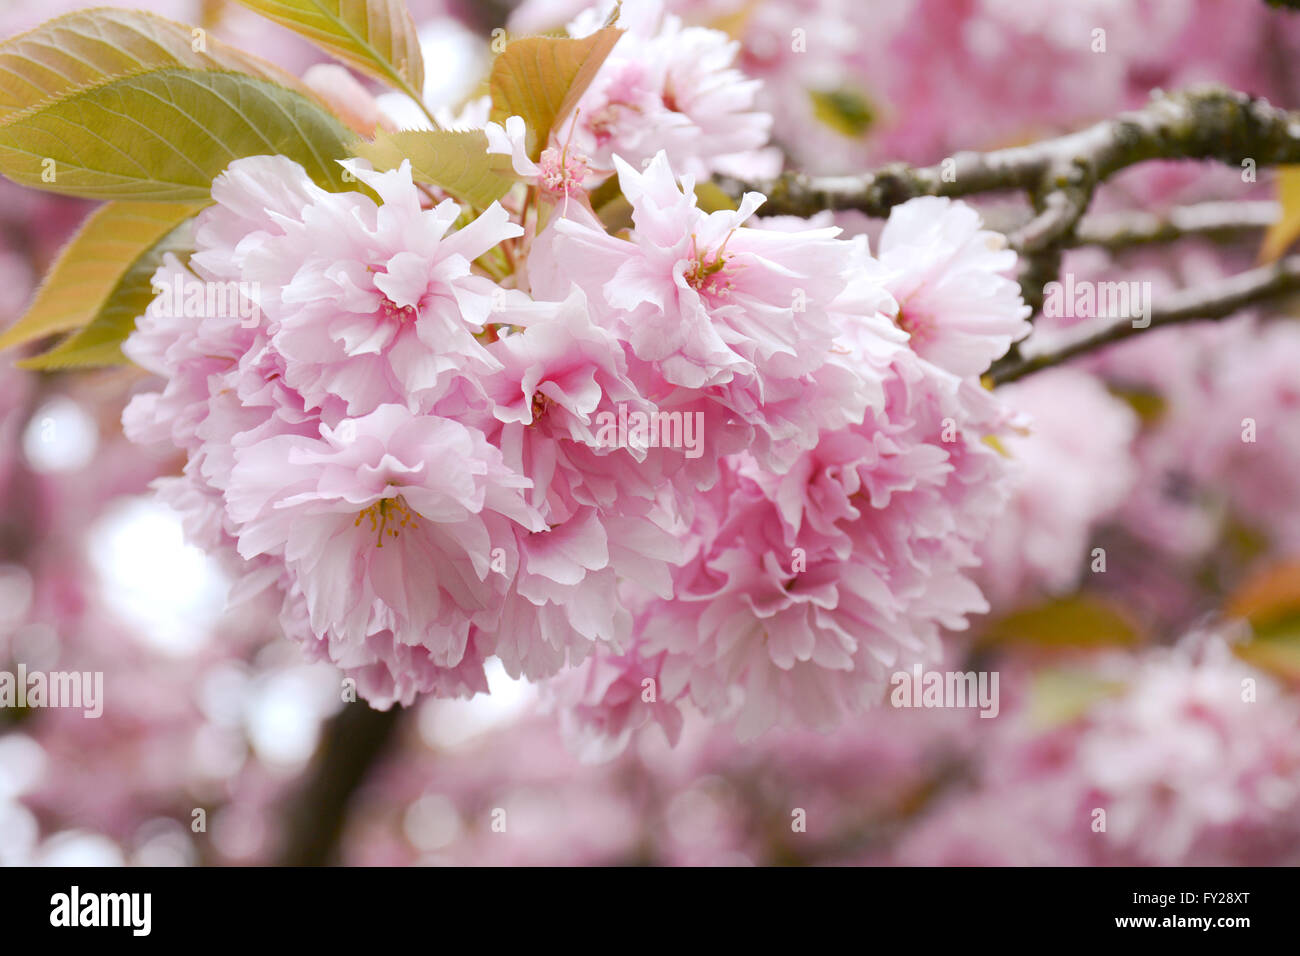 Fluffy Pink Cherry Blossom Flowers On Branches On The Tree In Stock